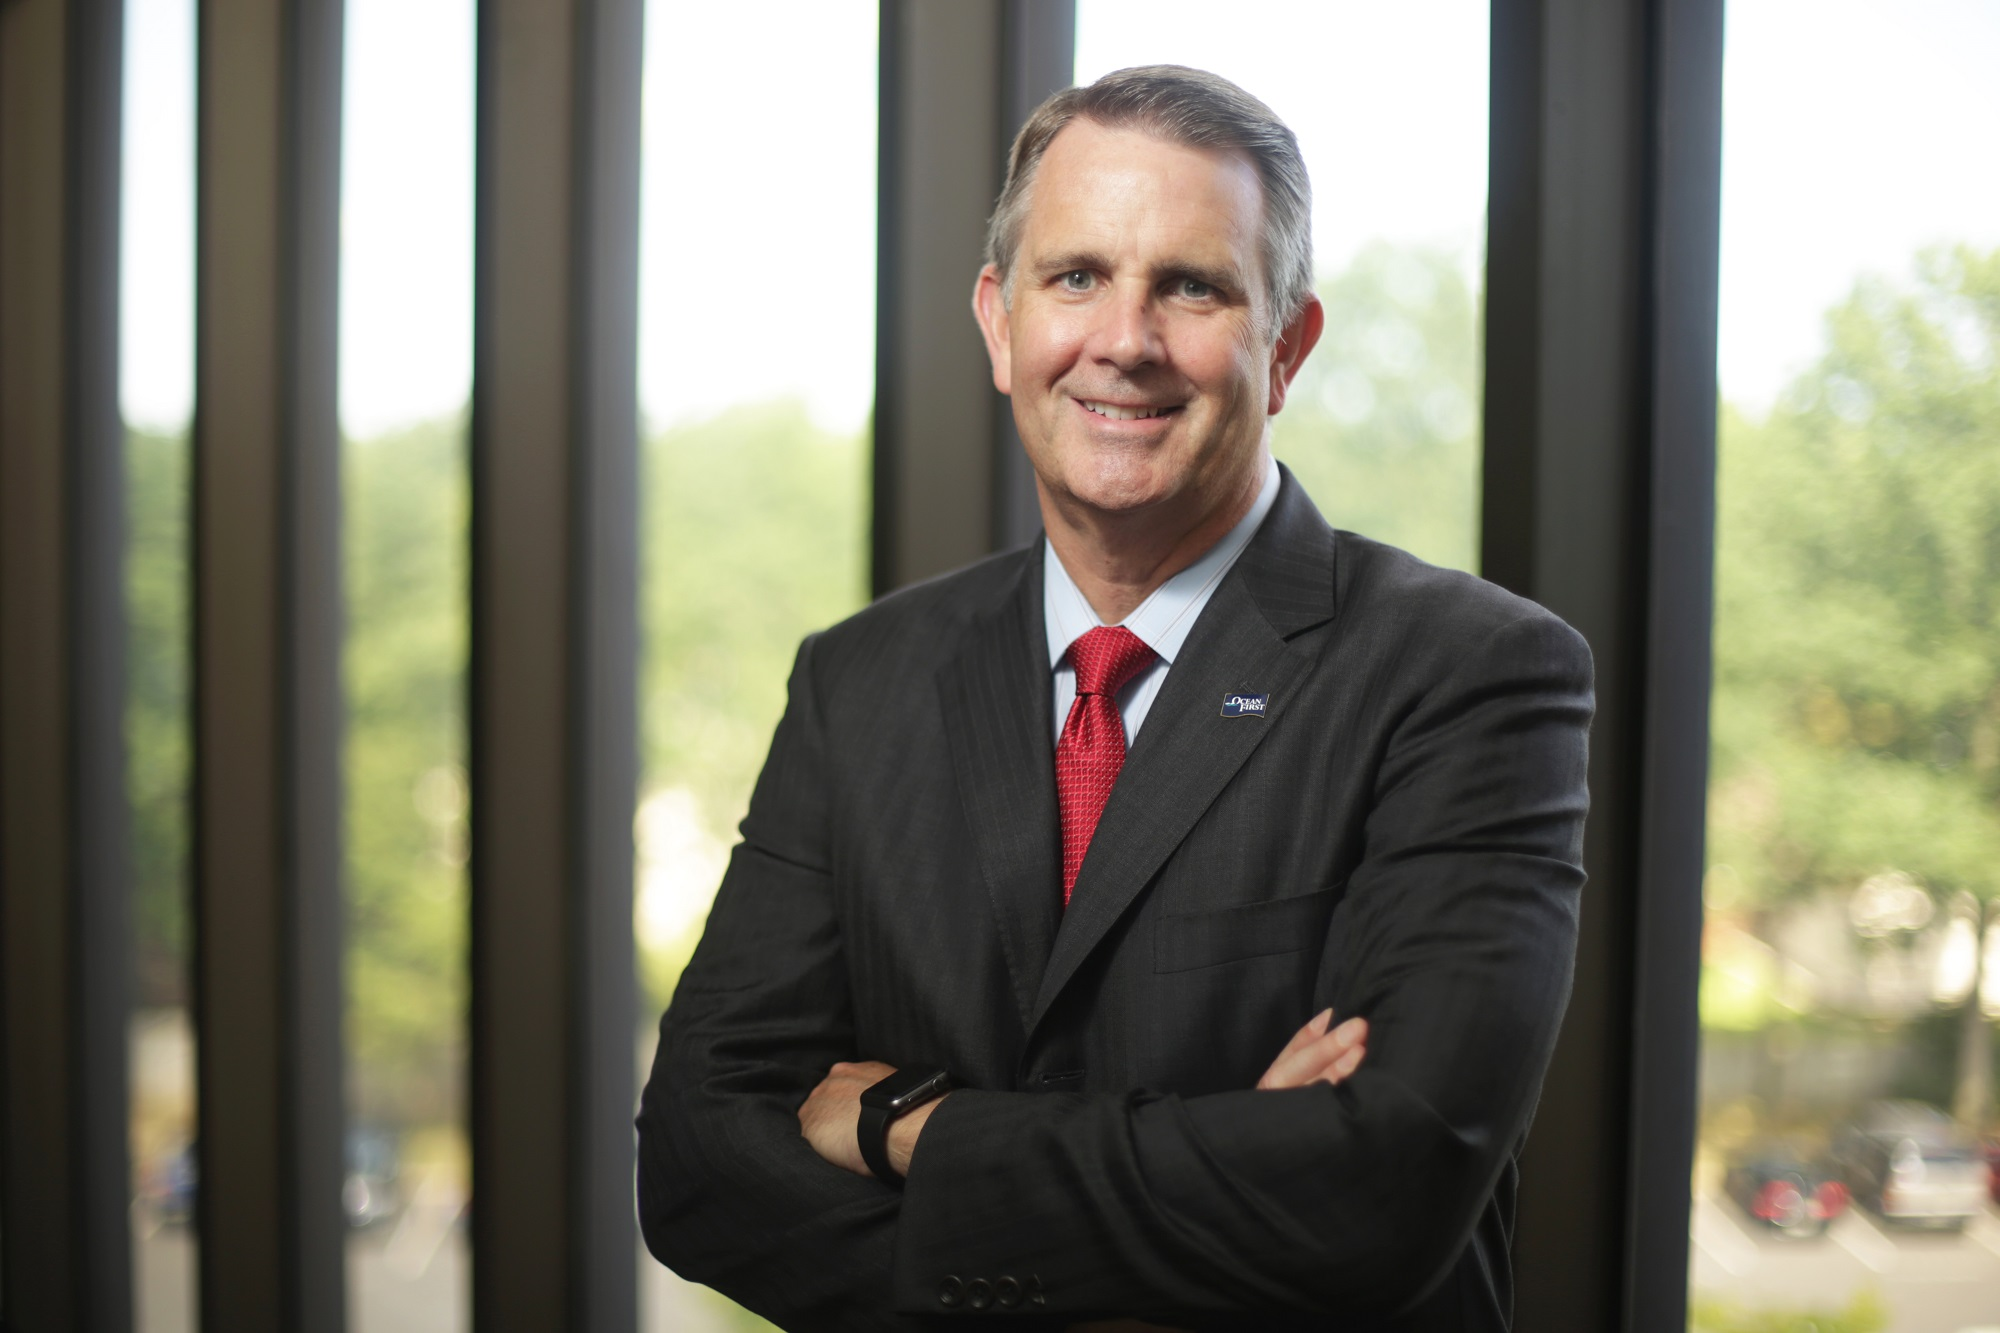 Christopher Maher, president and CEO, OceanFirst Bank.